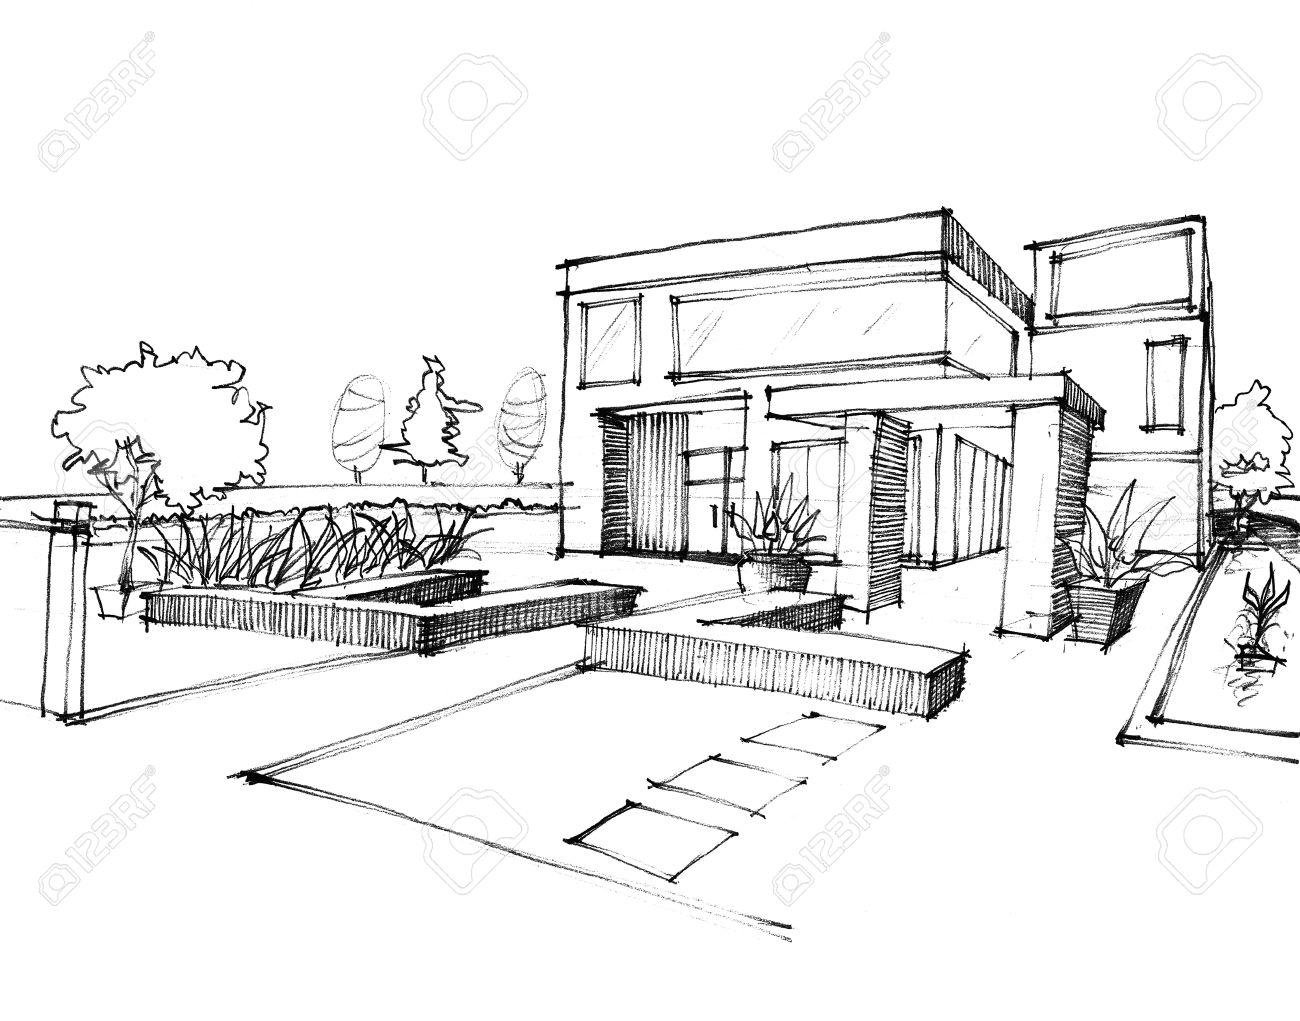 Home Sketch Design On White Paper Stock Photo Picture And Royalty Free Image Image 13524439